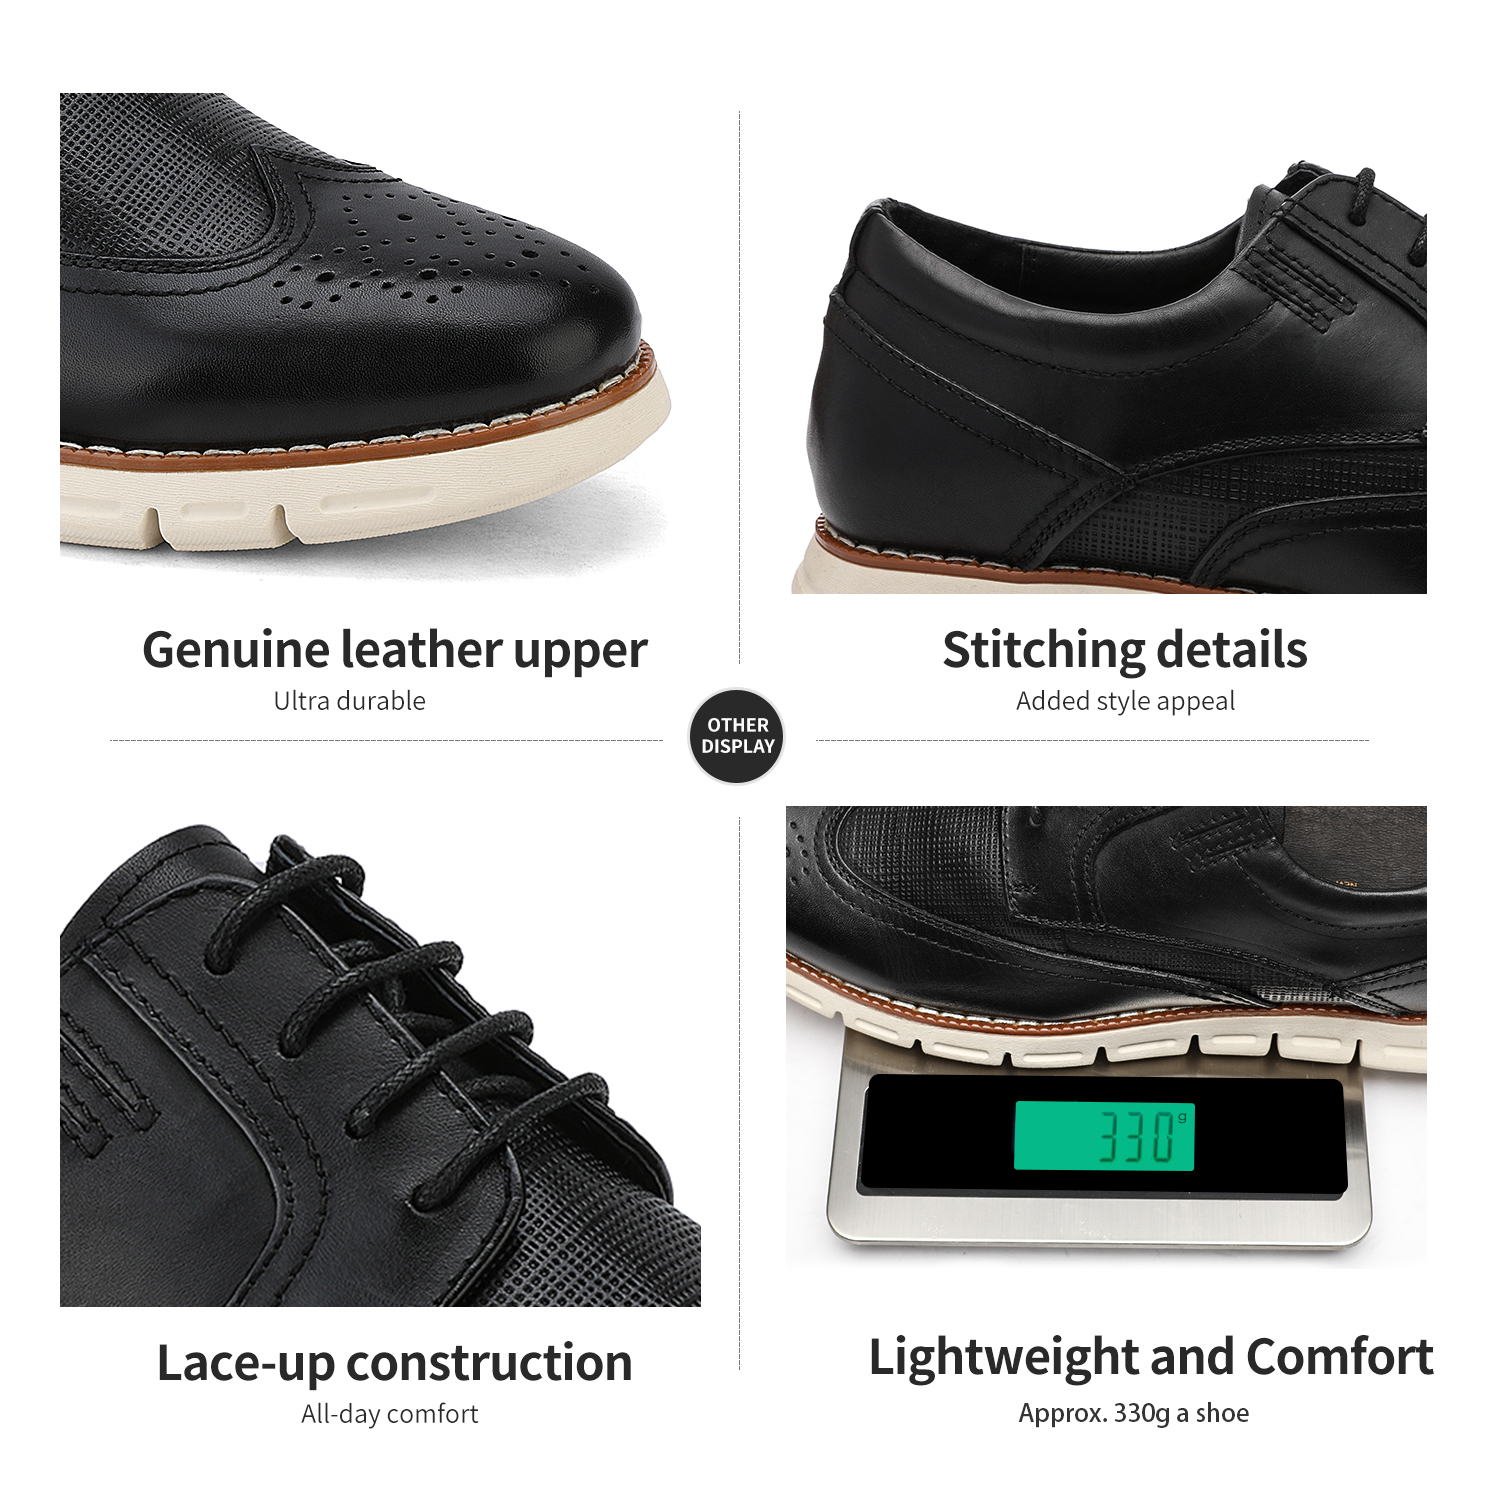 Men-s-Genuine-Leather-Casual-Formal-Sneakers-Lace-up-Business-Oxford-Dress-Shoes thumbnail 11